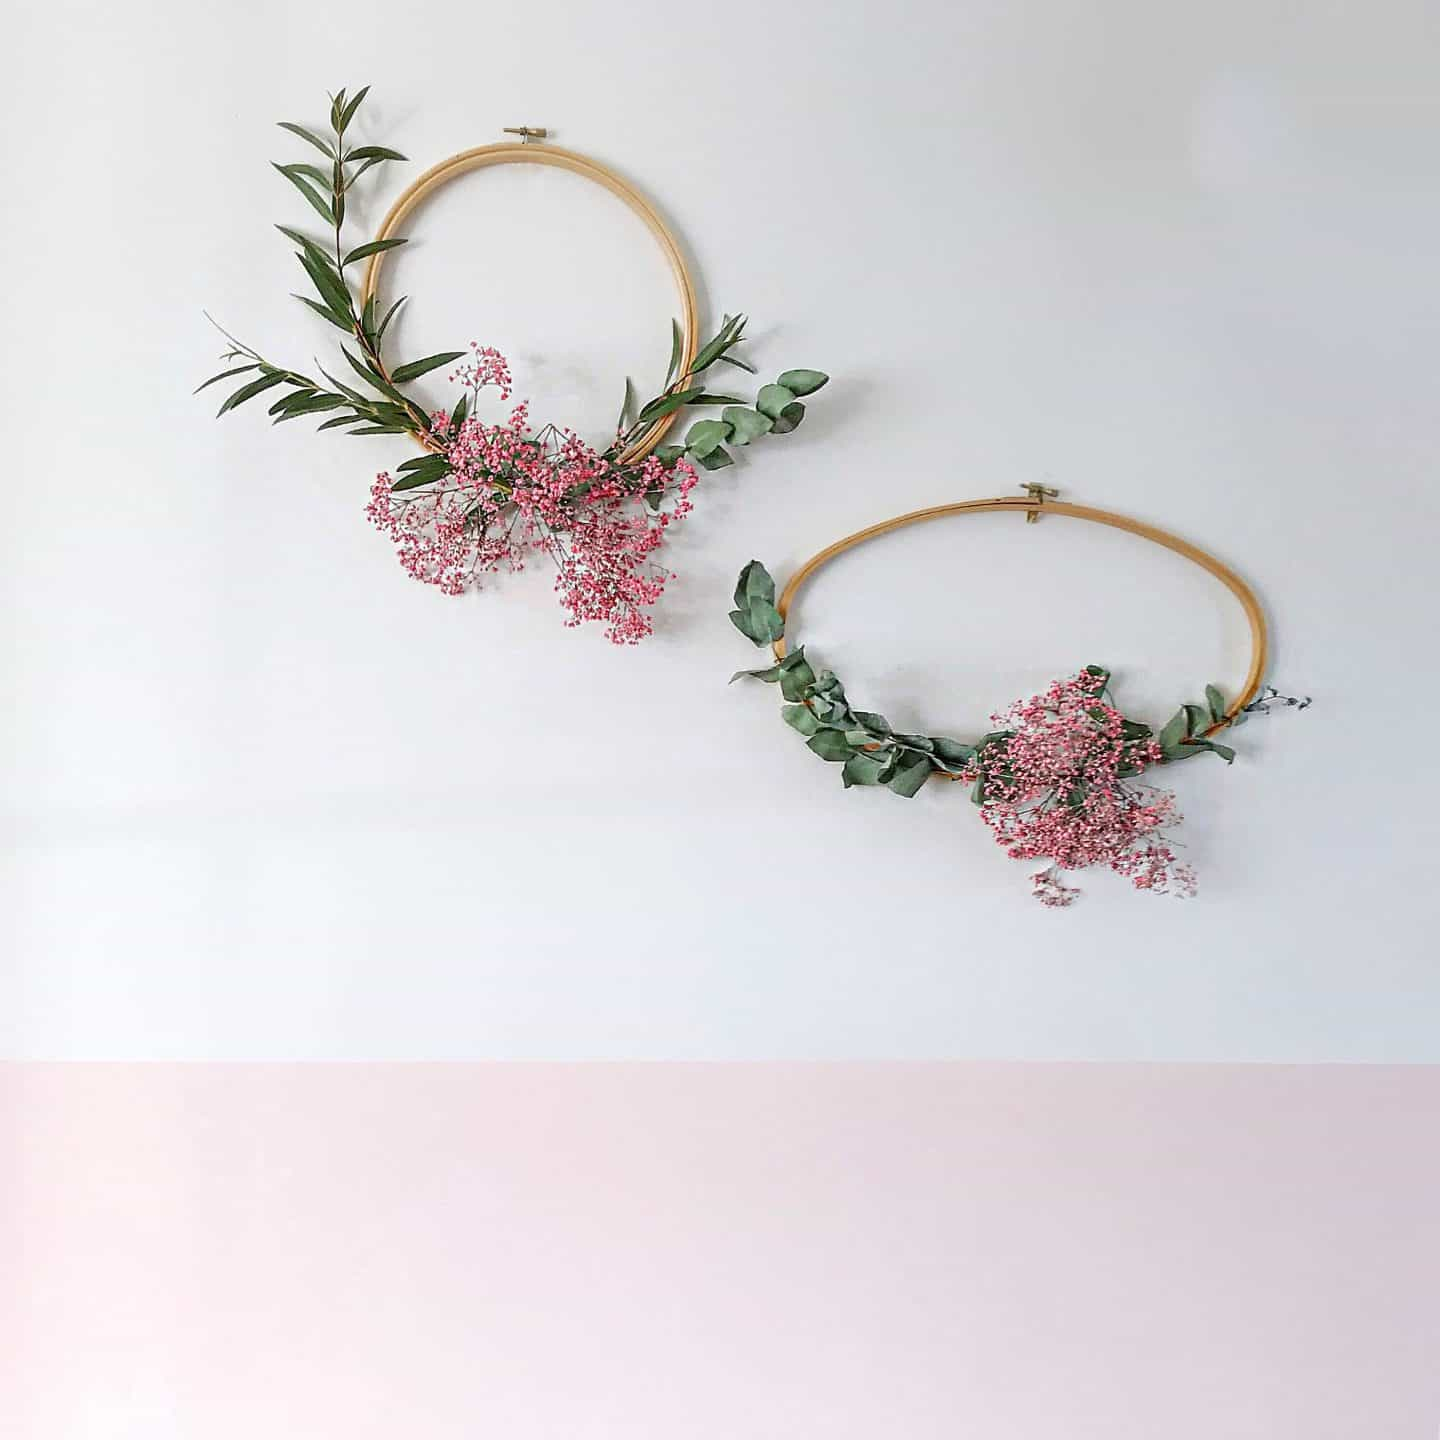 Winter wreaths with pink baby's breath and eualyptus on embroidery hoops